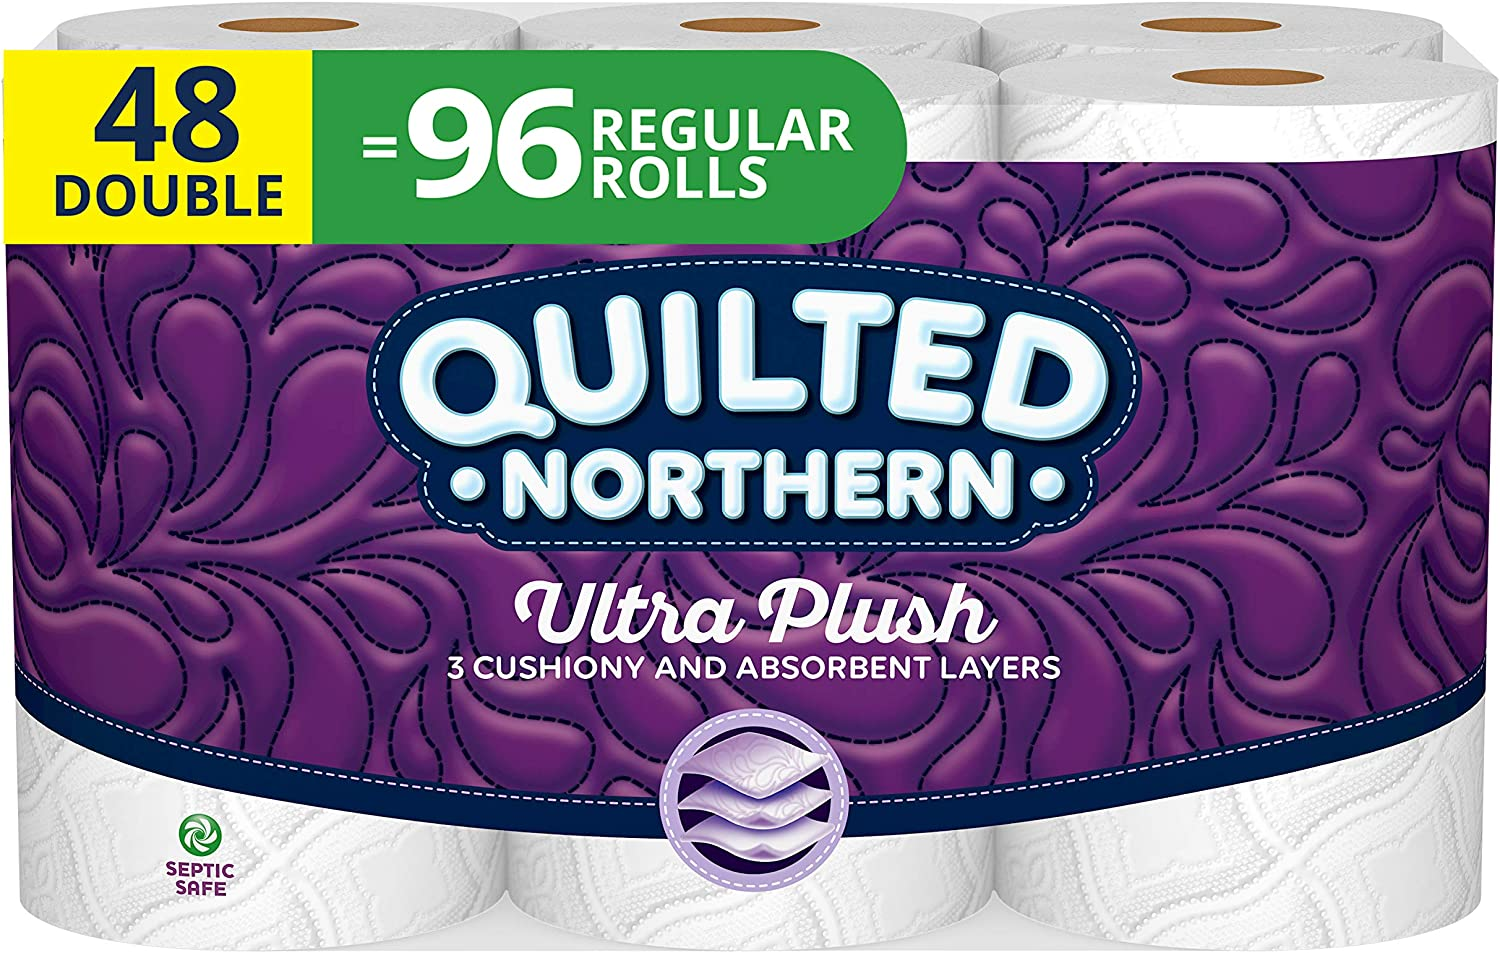 Quilted Northern Ultra Plush is a very soft and comfortable toilet paper that gives you that luxurious feel while still being eco friendly